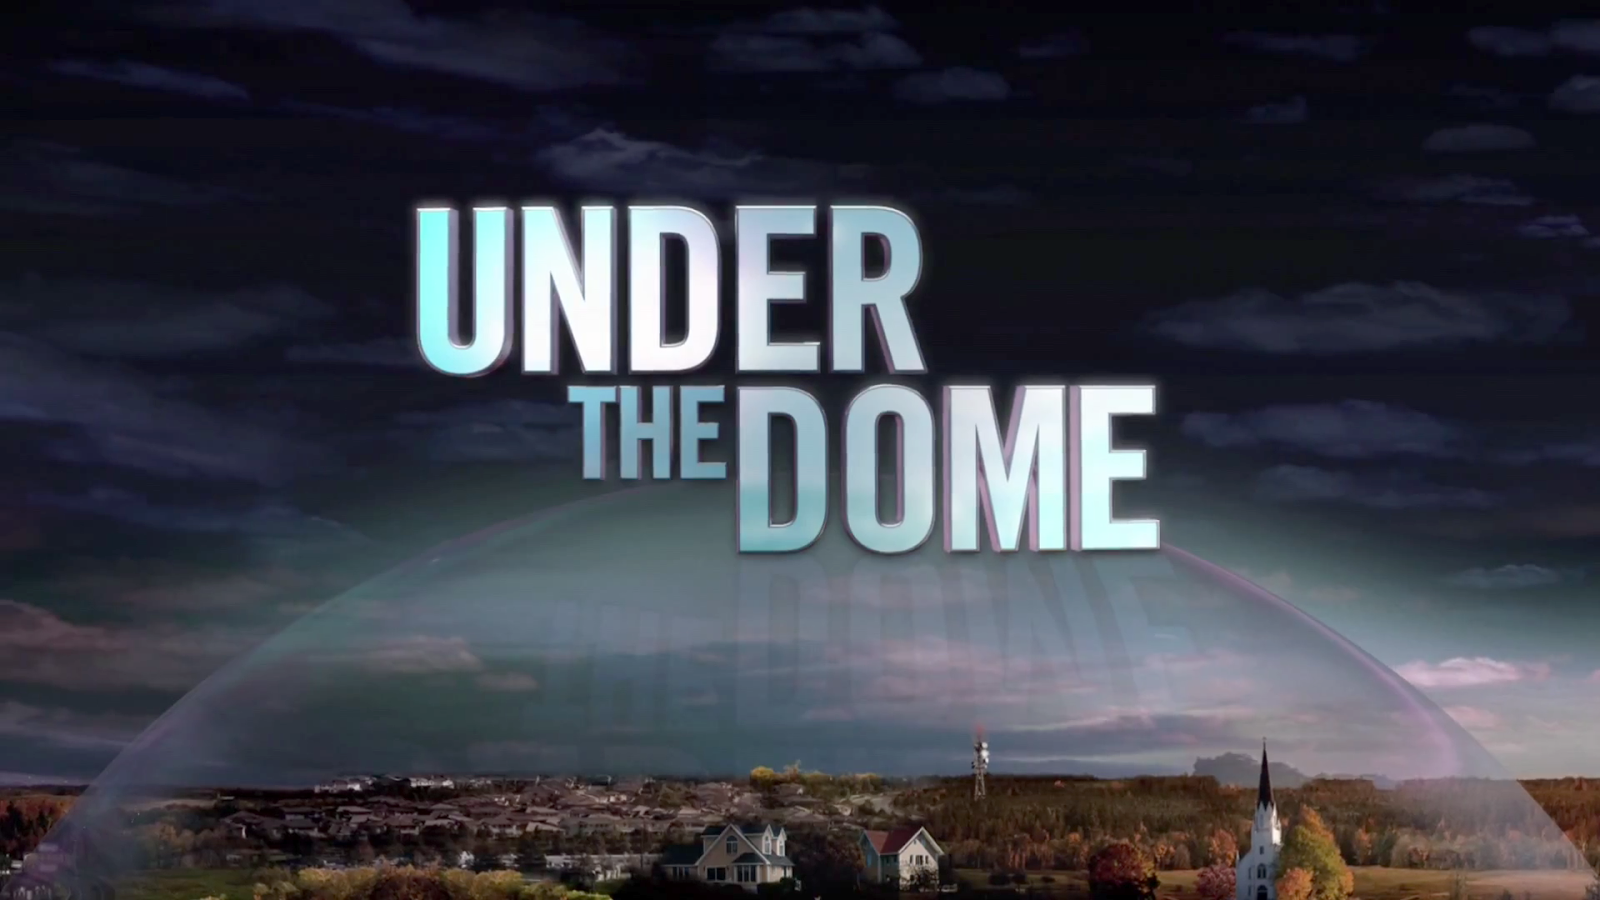 http://images6.fanpop.com/image/photos/34400000/Under-The-Dome-Logo-under-the-dome-34483793-1920-1080.png